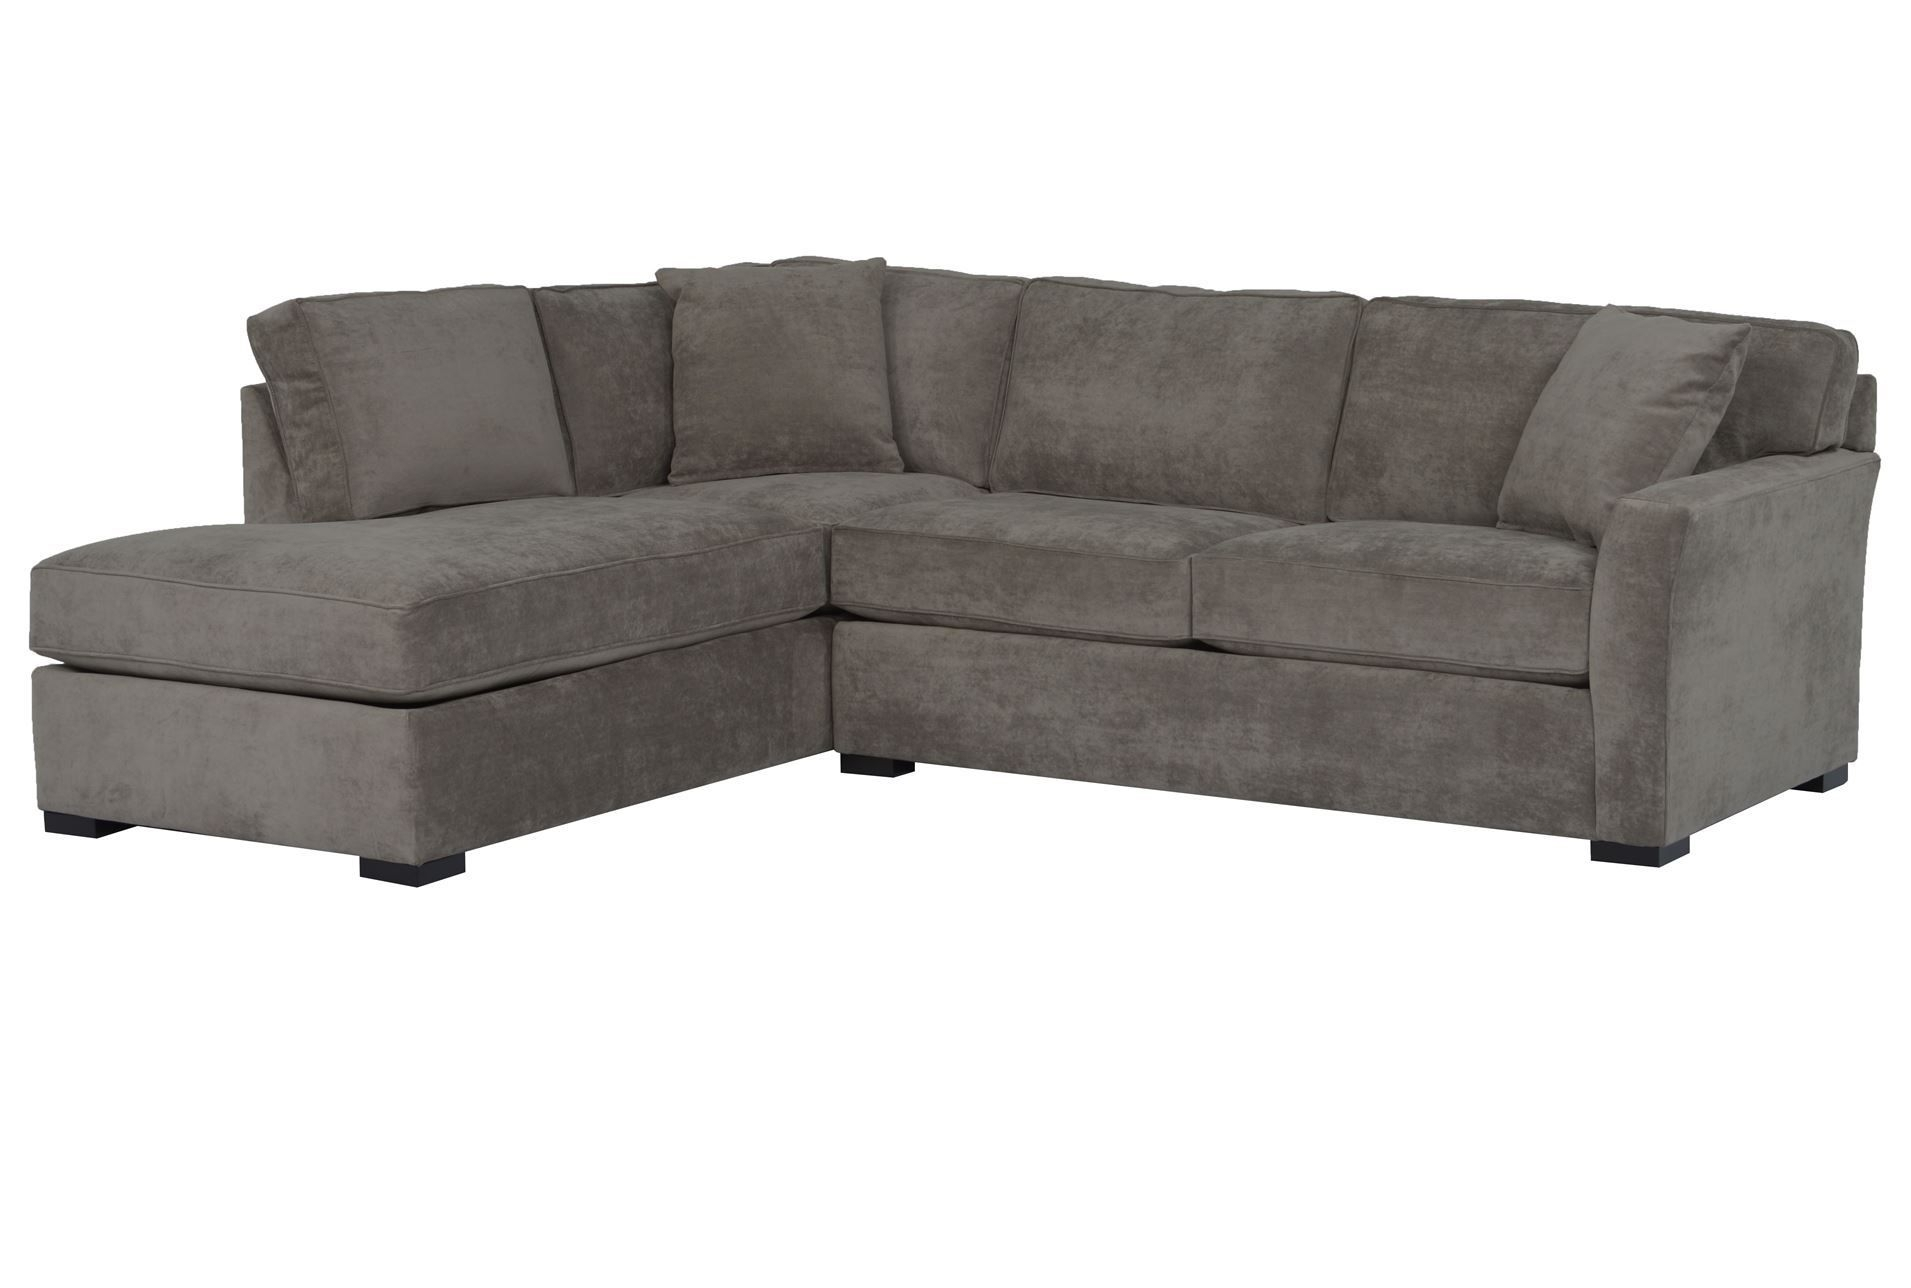 Aspen 2 Piece Sleeper Sectional W/laf Chaise | Living Room Regarding Aspen 2 Piece Sectionals With Laf Chaise (View 5 of 25)